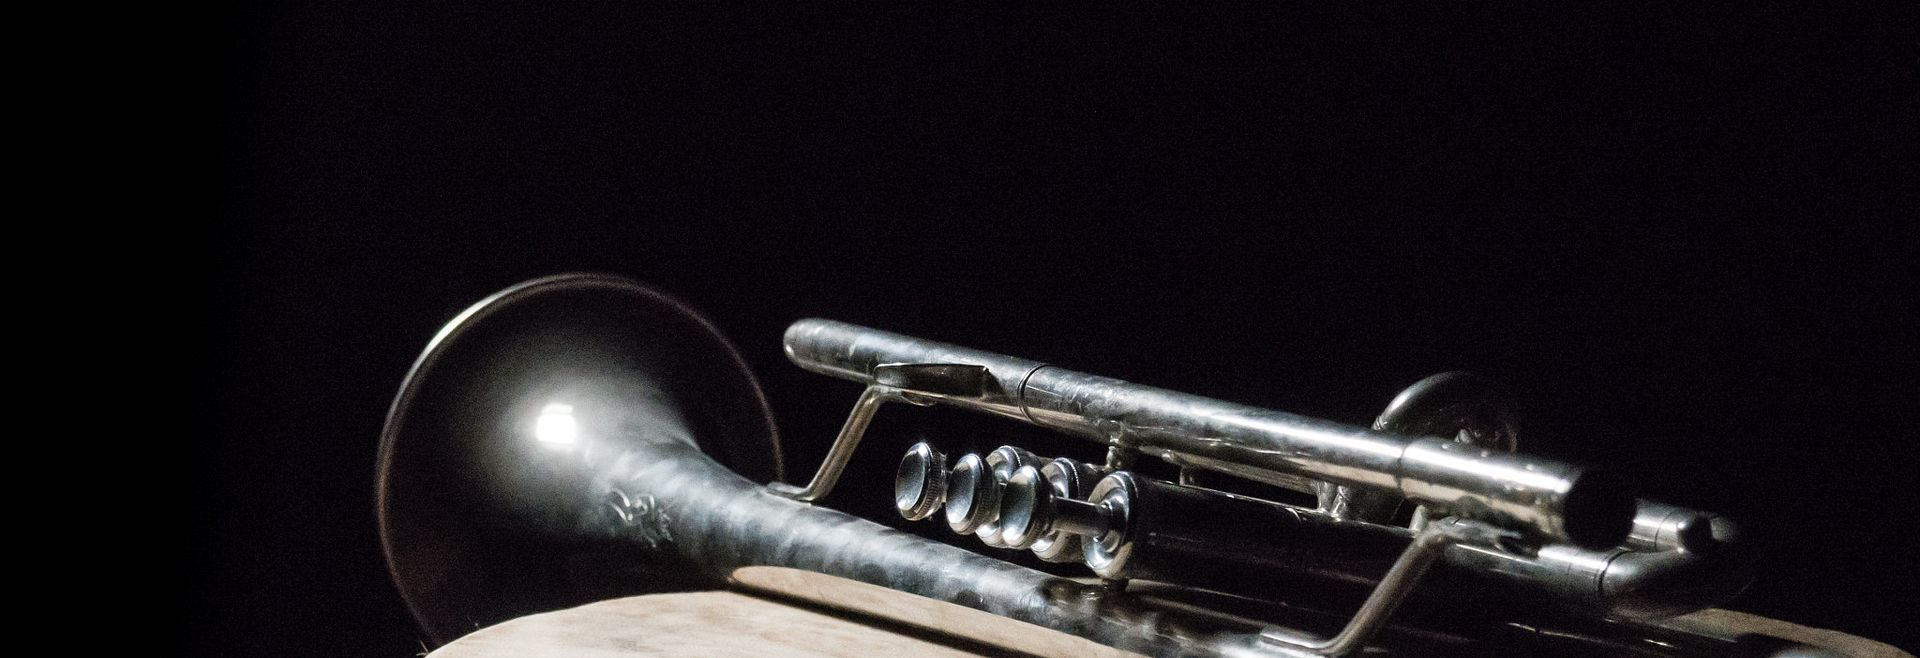 Trumpet laying on a stand against a black background